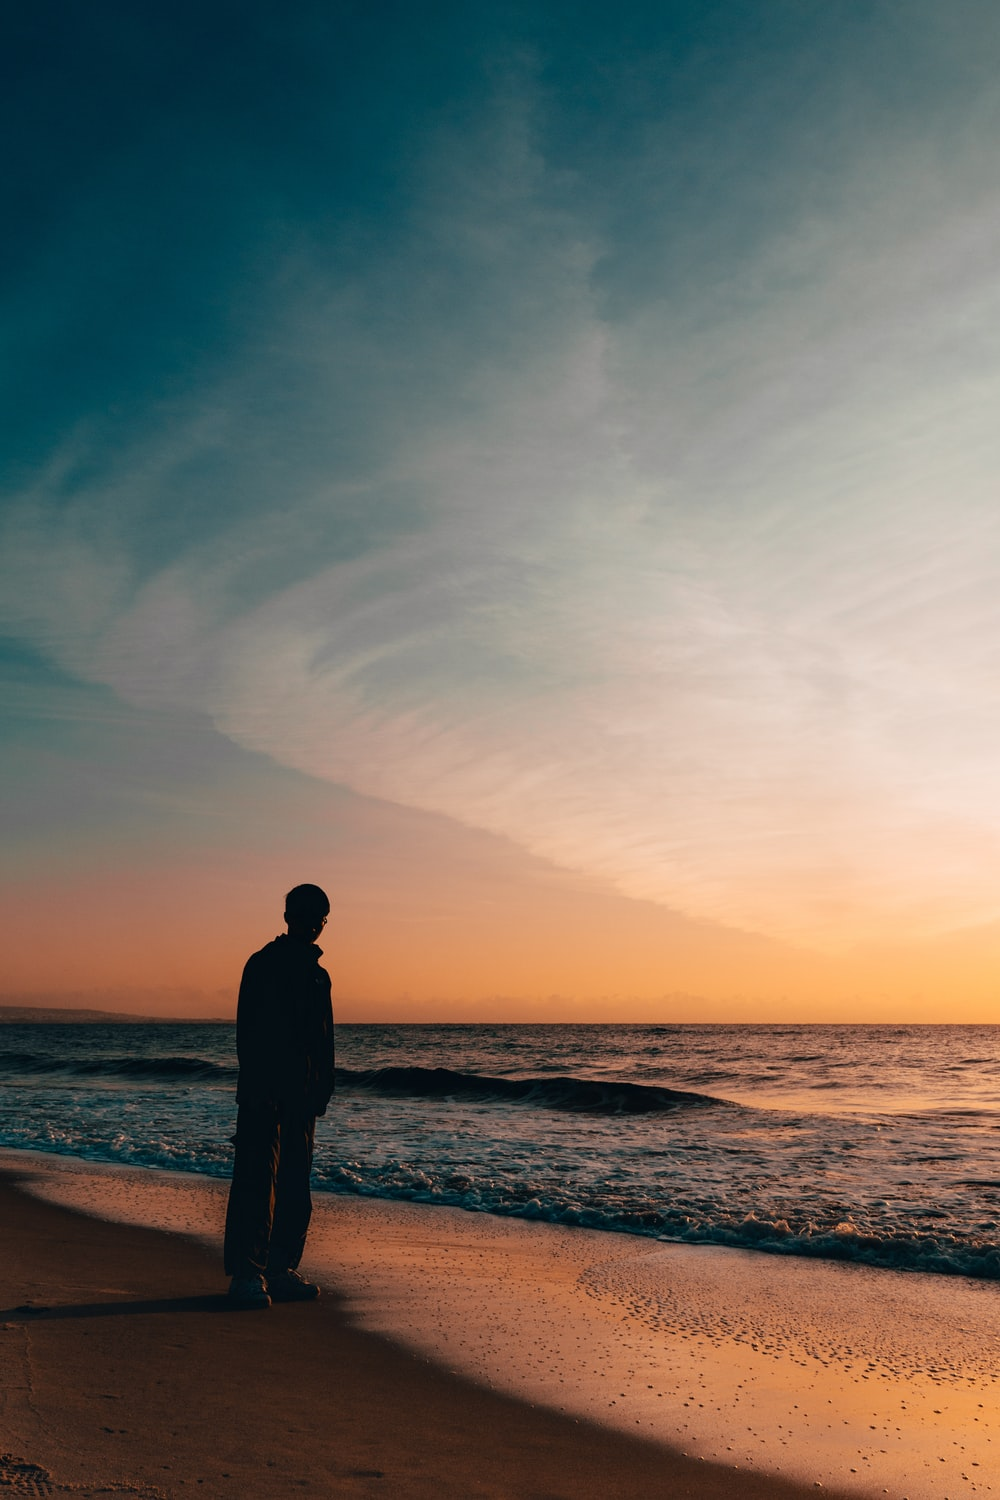 silhouette person standing beside seashore during sunset